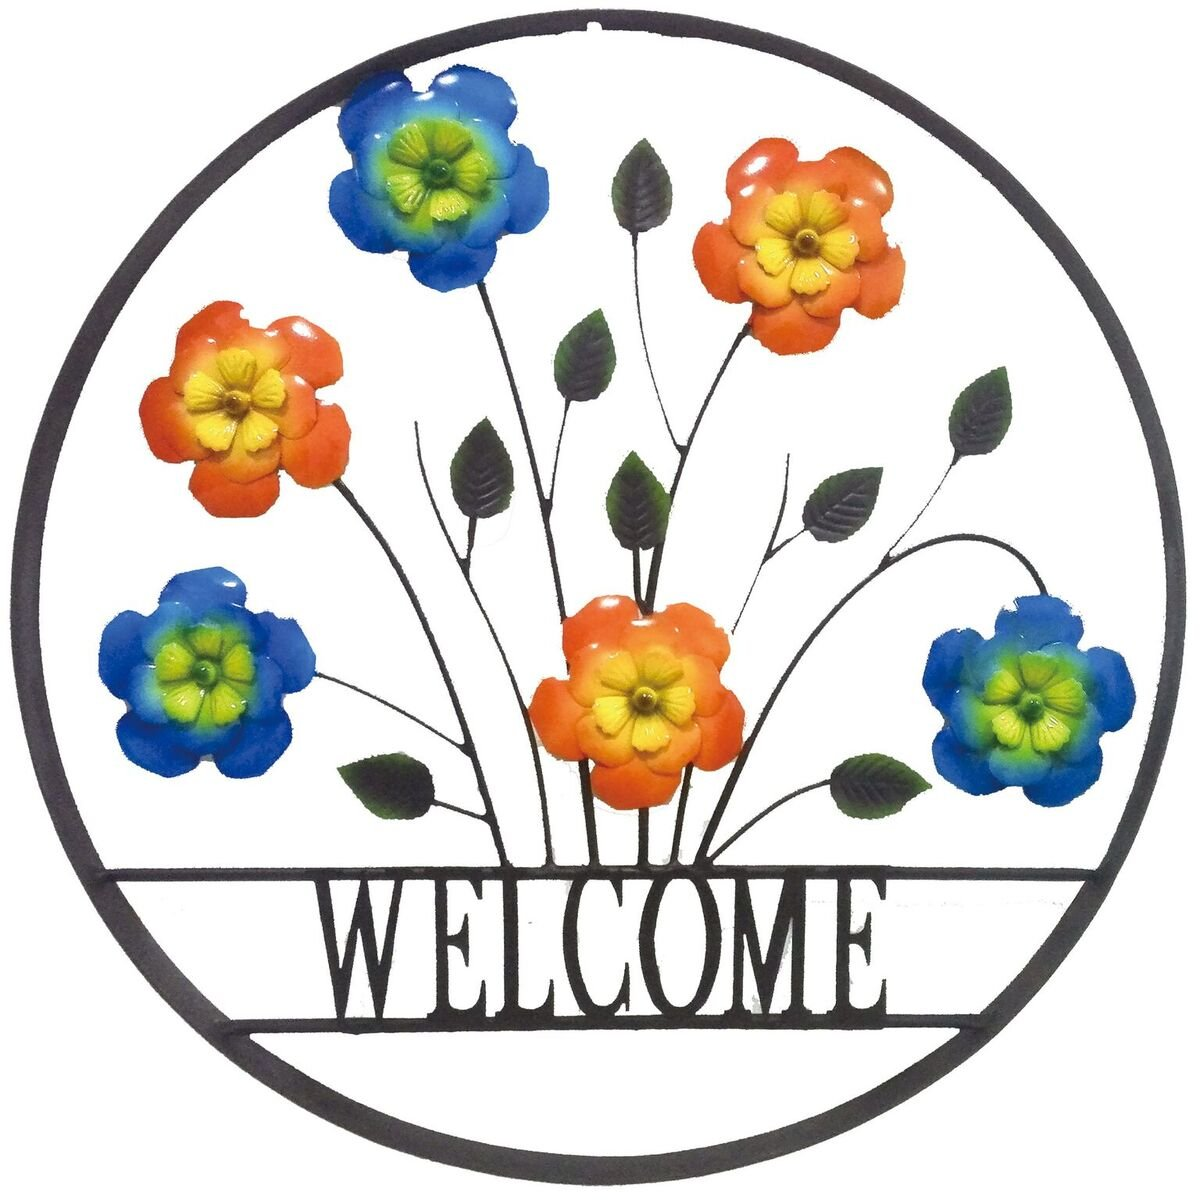 Backyard Expressions 906675 Decorative Outdoor Welcome Wheel Wall Art Sign, Floral